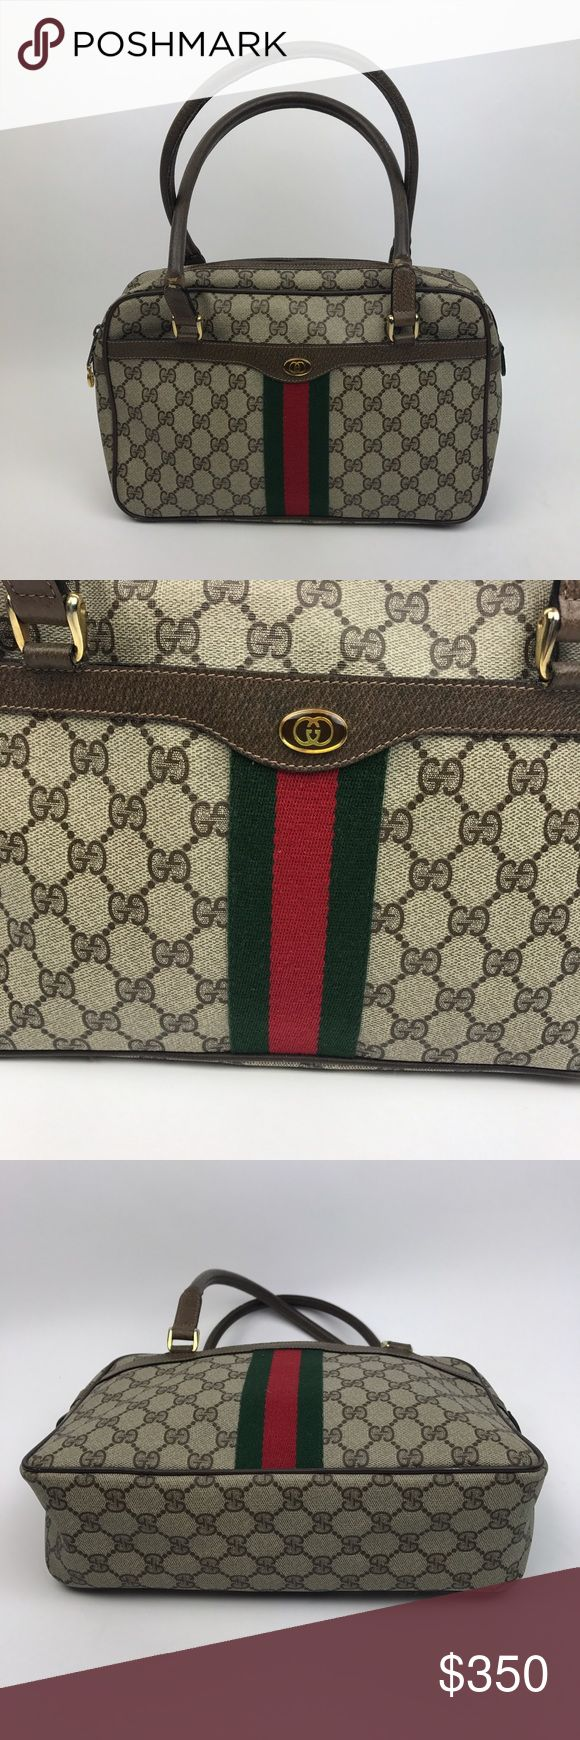 """[Gucci] Vintage Monogram Stripe Shoulder Bag Brown Authentic vintage Gucci handbag. Rectanglular snap with zip top closure. Double handles. Outer slip pocket. Interior has a side zip pocket. Signature logo web canvas coated. Logo zipper pull. Stamped inside """"Gucci Accessory Collection"""" Made in Italy. Serial number on tag   🔹Dimensions: 12""""L x 8""""H x 3.5""""D 🔹Strap Drop: 8"""" 🔹Condition: Very good pre-owned condition. Some wear/marks on leather handles mainly where they bend. Small scuff on…"""